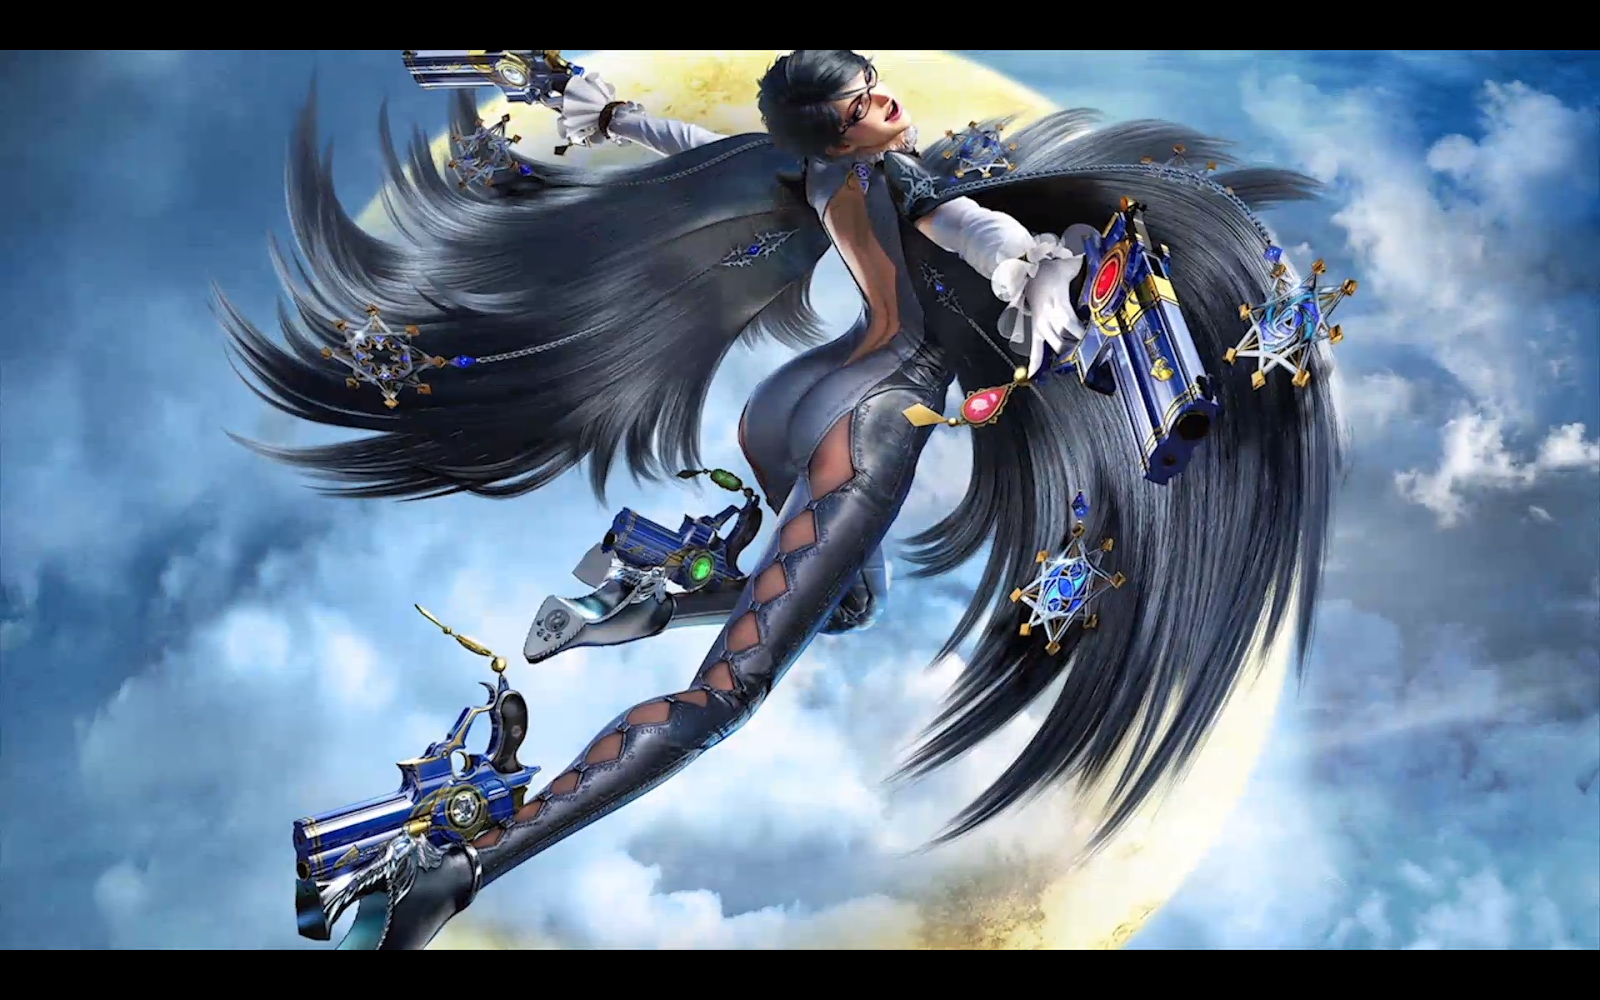 Bayonetta 2 wielding scarborough fair